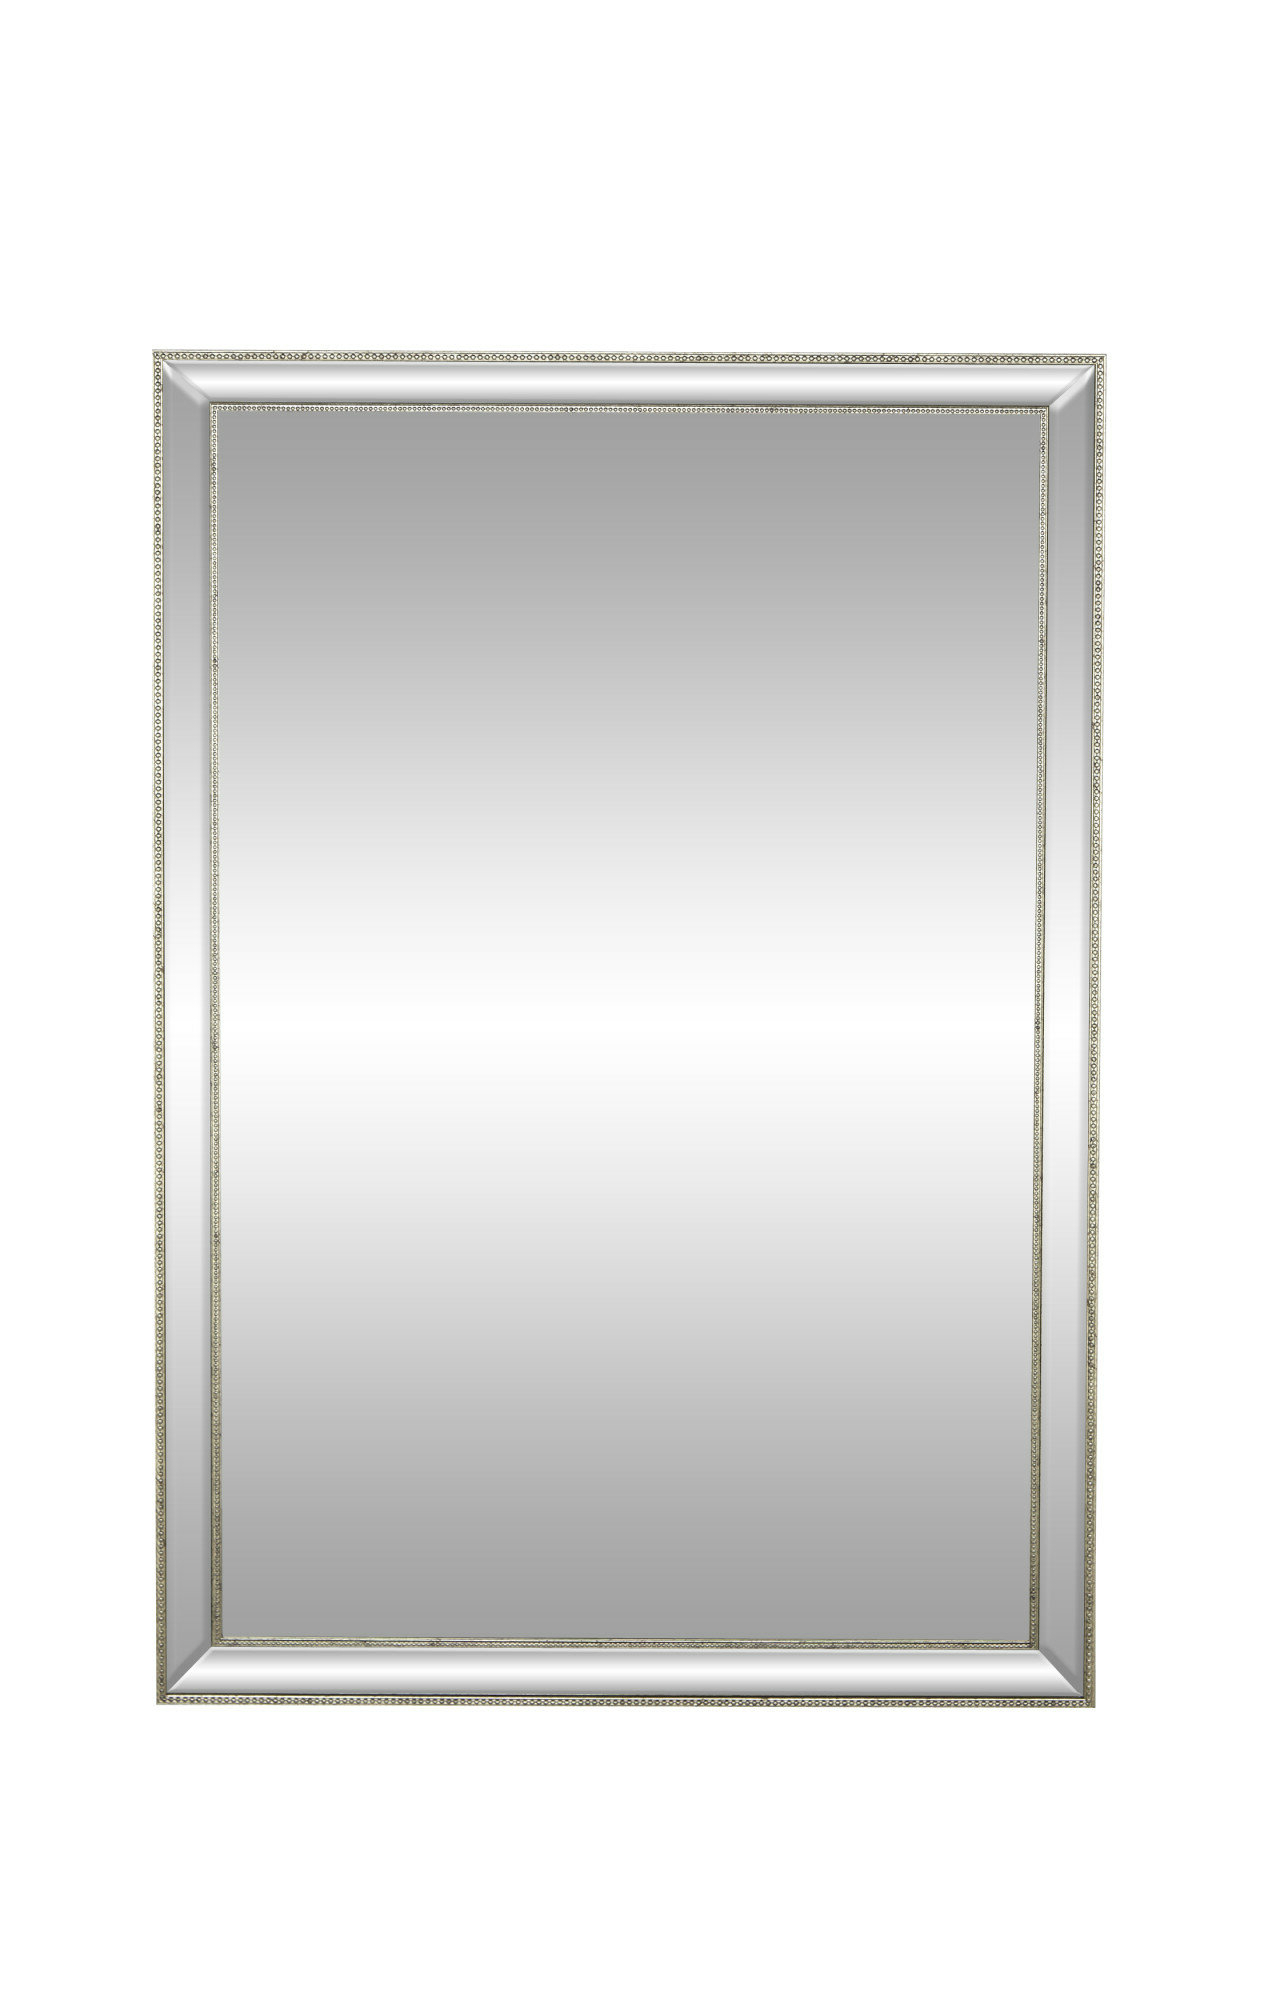 Preferred Dedrick Decorative Framed Modern And Contemporary Wall Mirrors Regarding Mabrey Modern Rectangular Full Length Mirror (View 16 of 20)